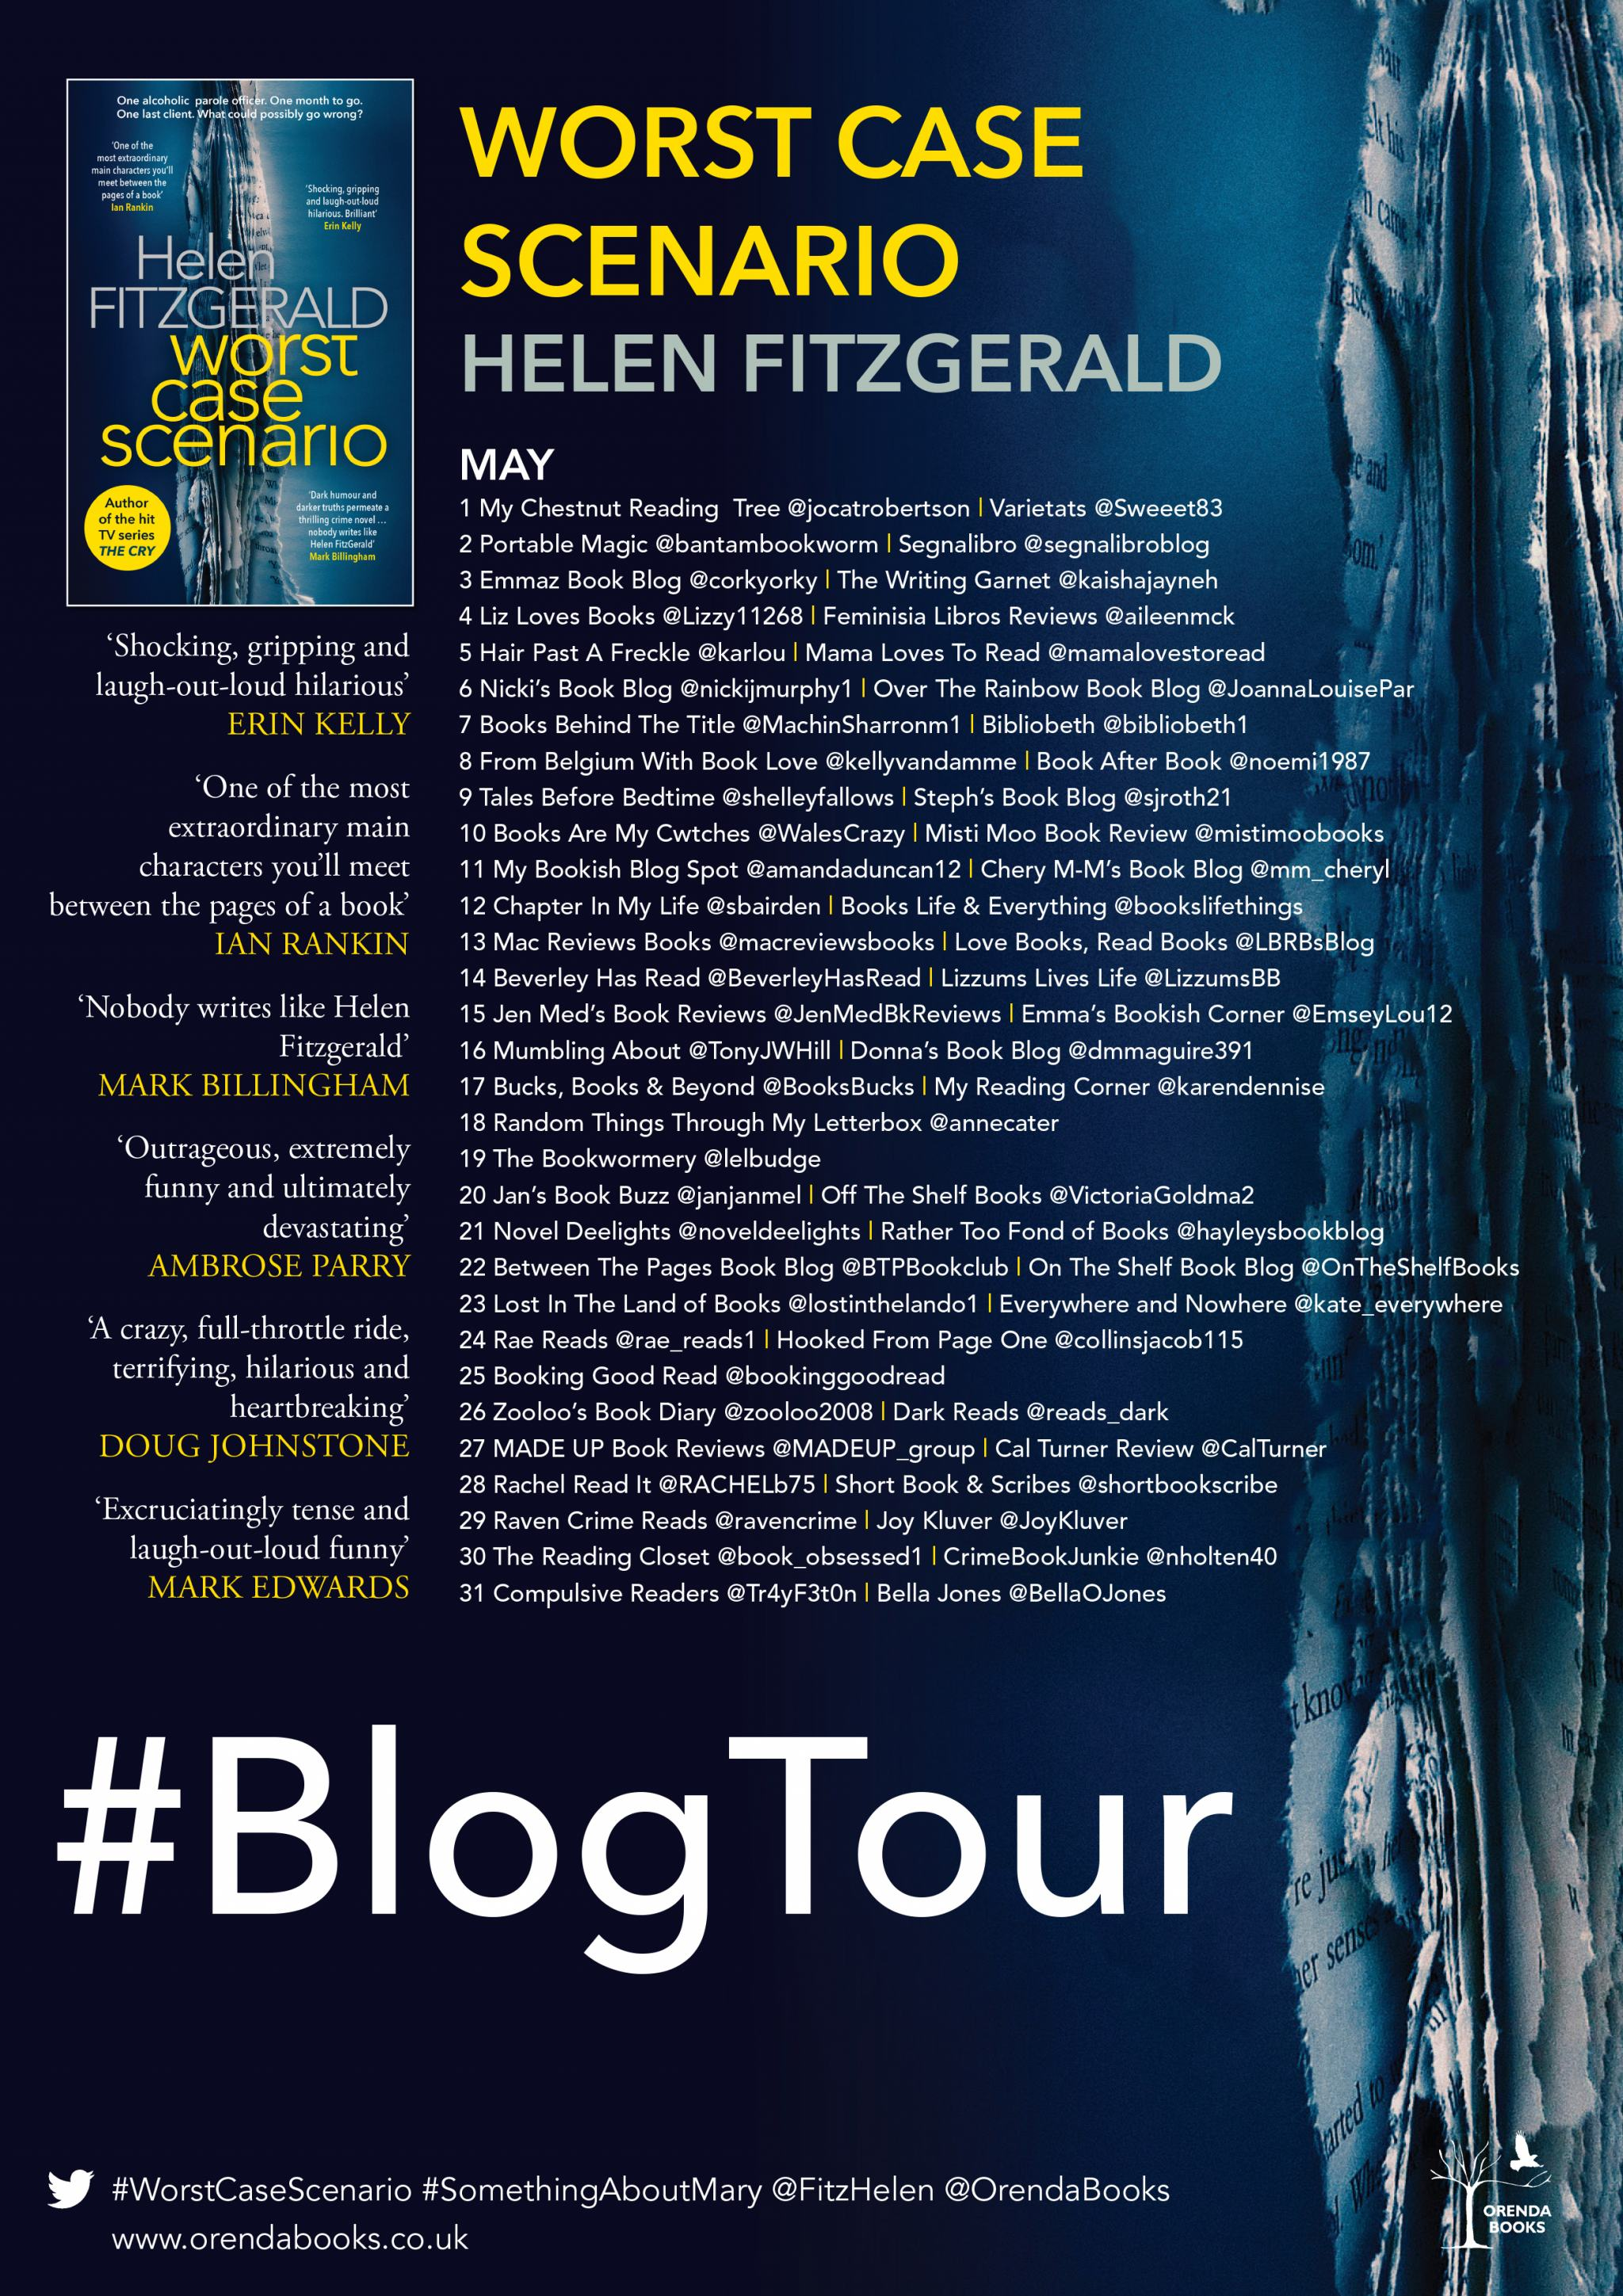 ***#BookReview of Worst Case Scenario by Helen Fitzgerald @fitzhelen @orendabooks @annecater #teamorenda #worstcasescenario #somethingaboutmary